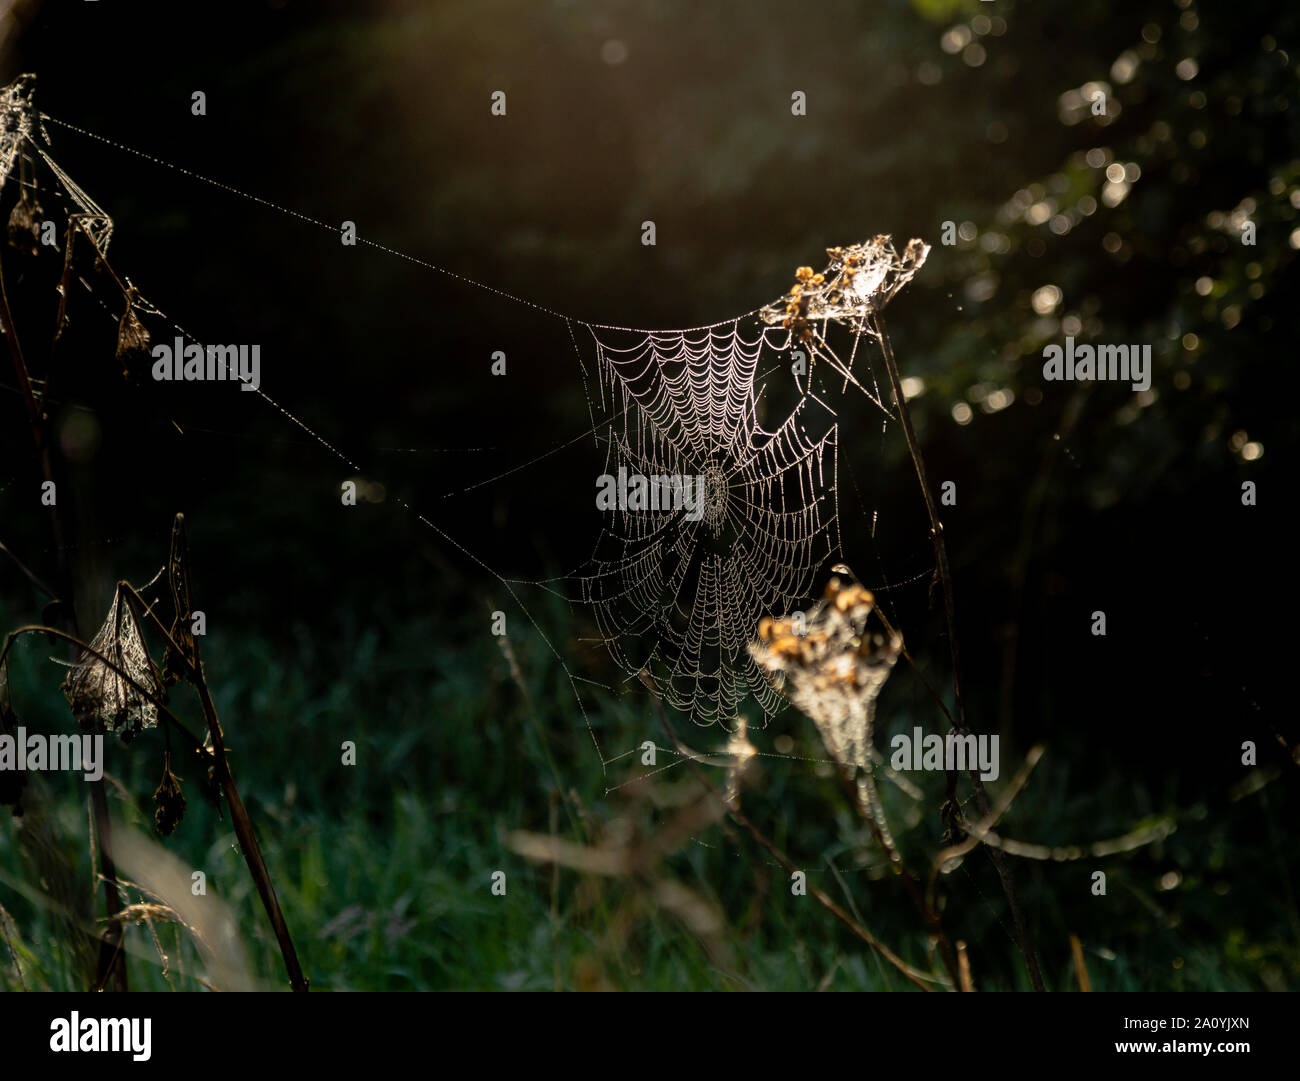 A large spider's web covered in dew drops taken on a misty autumn morning in Yorkshire, England. Stock Photo